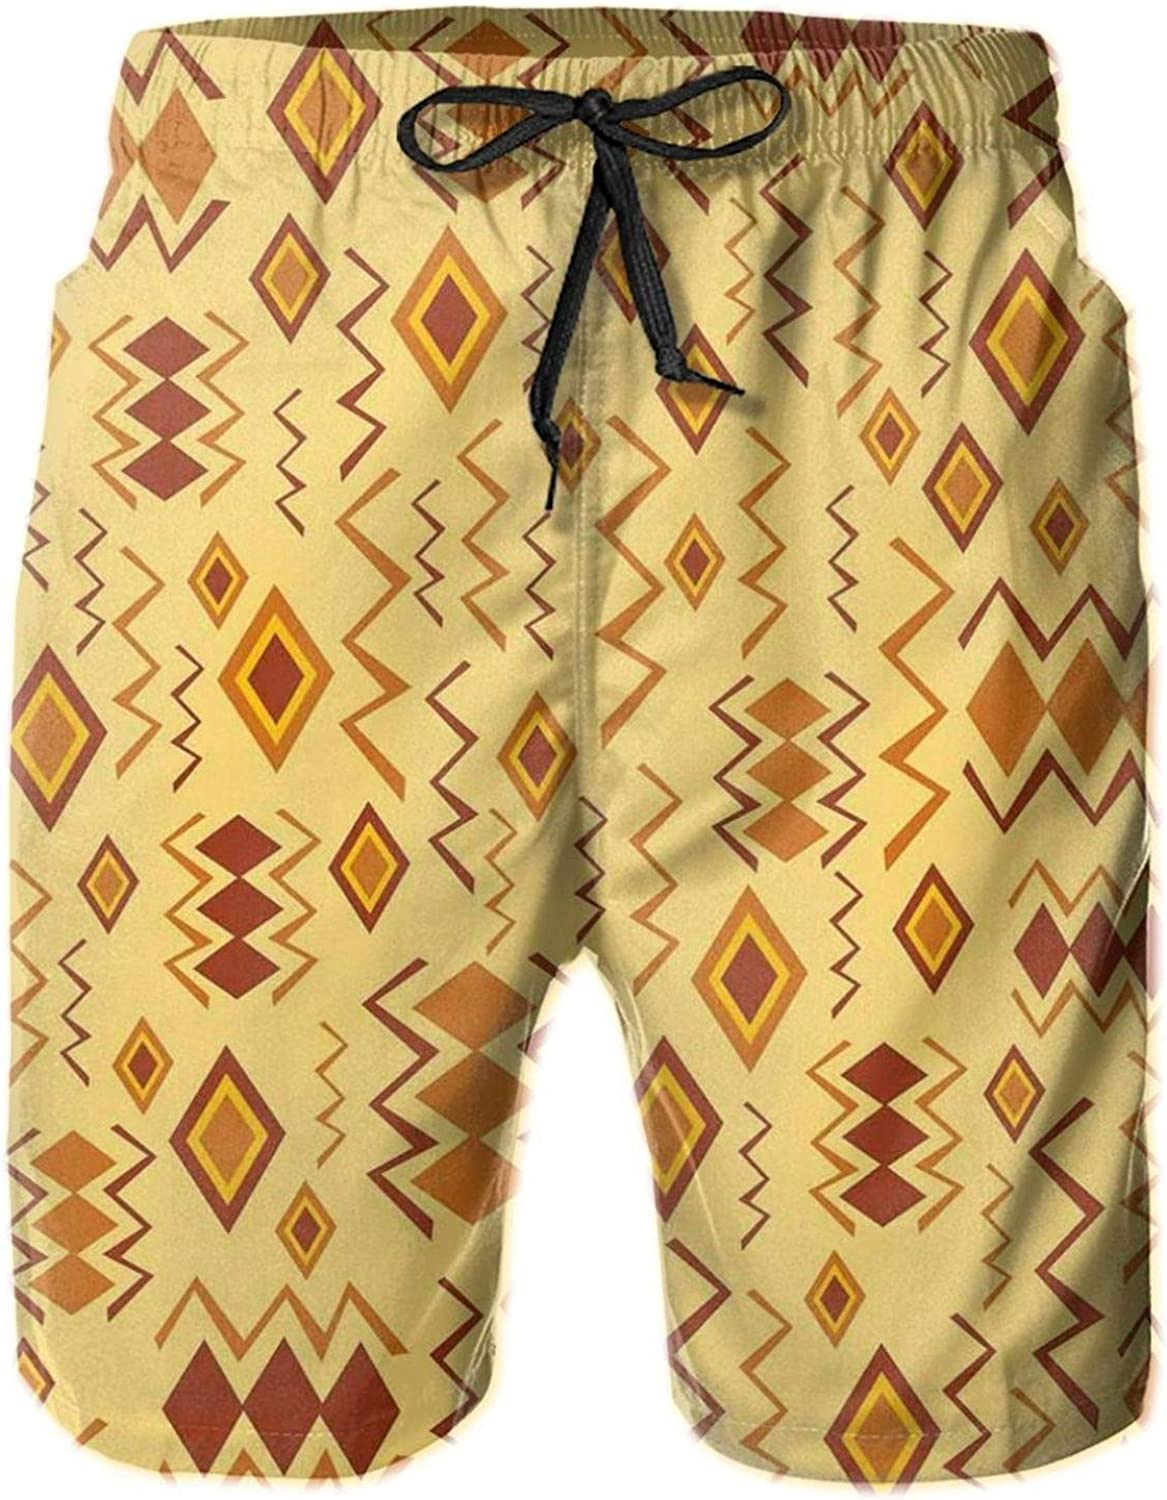 African Art with Ethnic Quirky Forms Abstract Cultural Icons Tribal Design Mens Swim Trucks Shorts with Mesh Lining,M